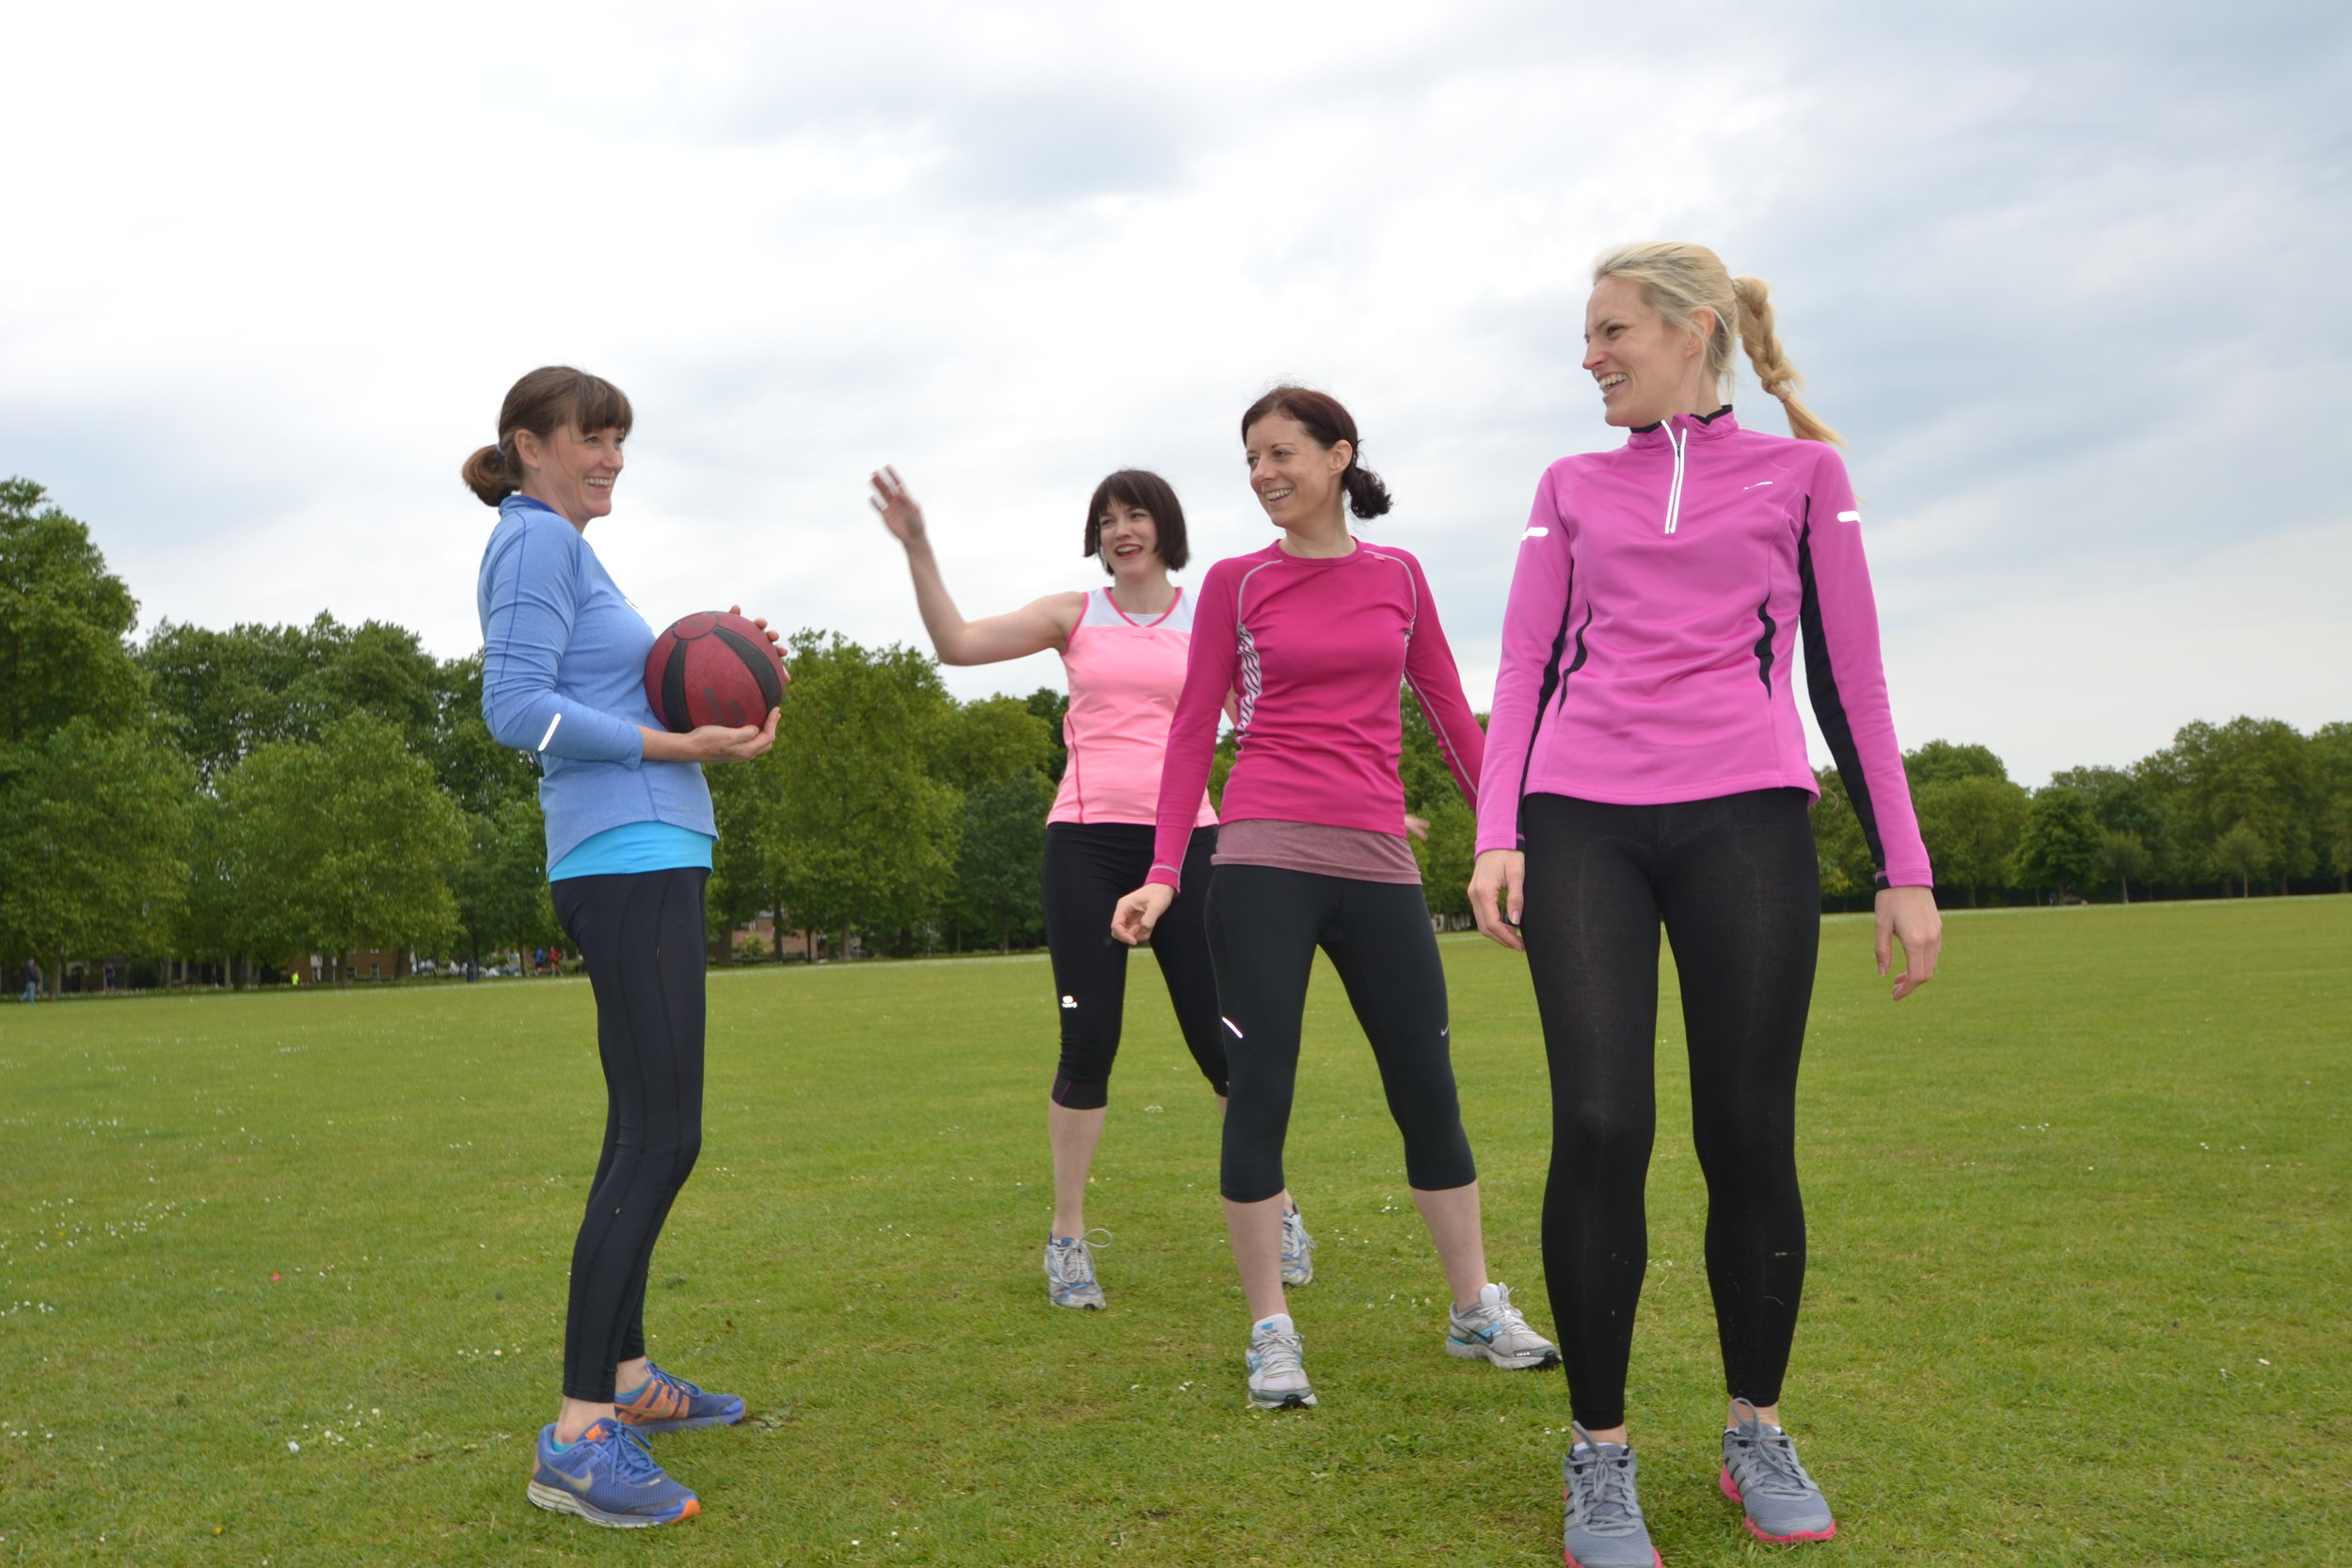 ENJOY CLASSES - Friendly, sociable, non competitive classes that offer effective exercise to all abilities.